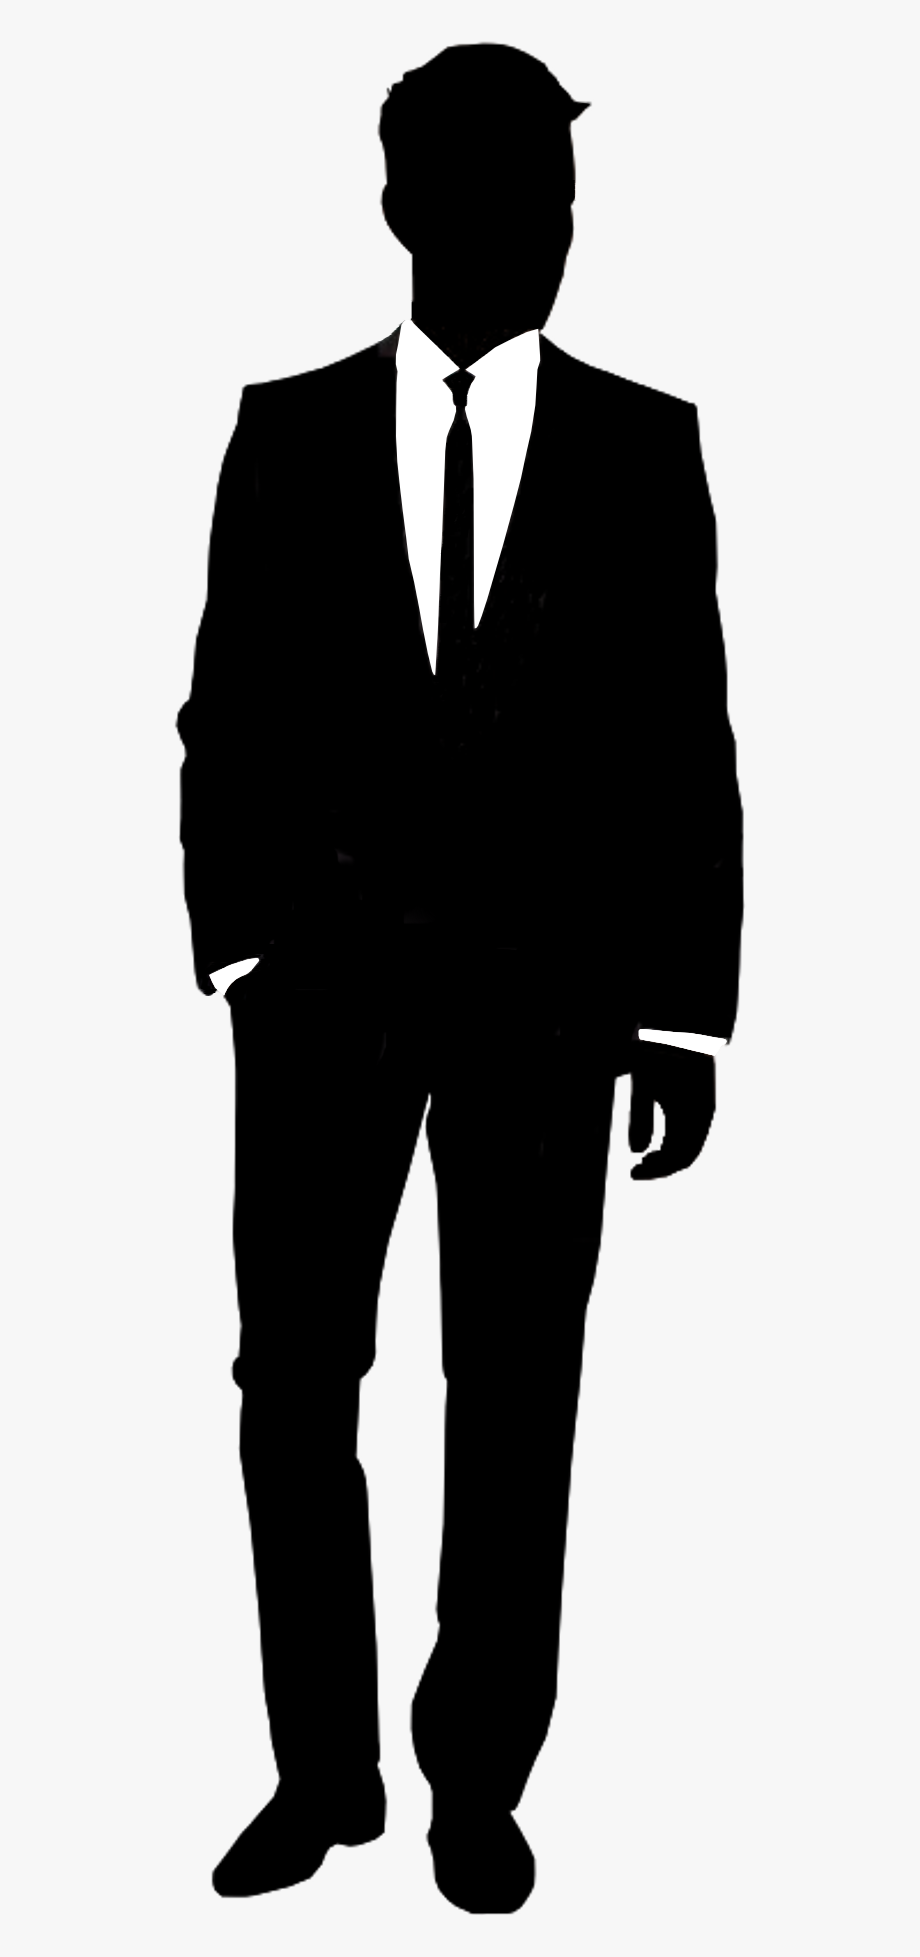 Tuxedo man clipart clipart royalty free library Suit Silhouette Shirt Informal Attire - Silhouette Man In ... clipart royalty free library